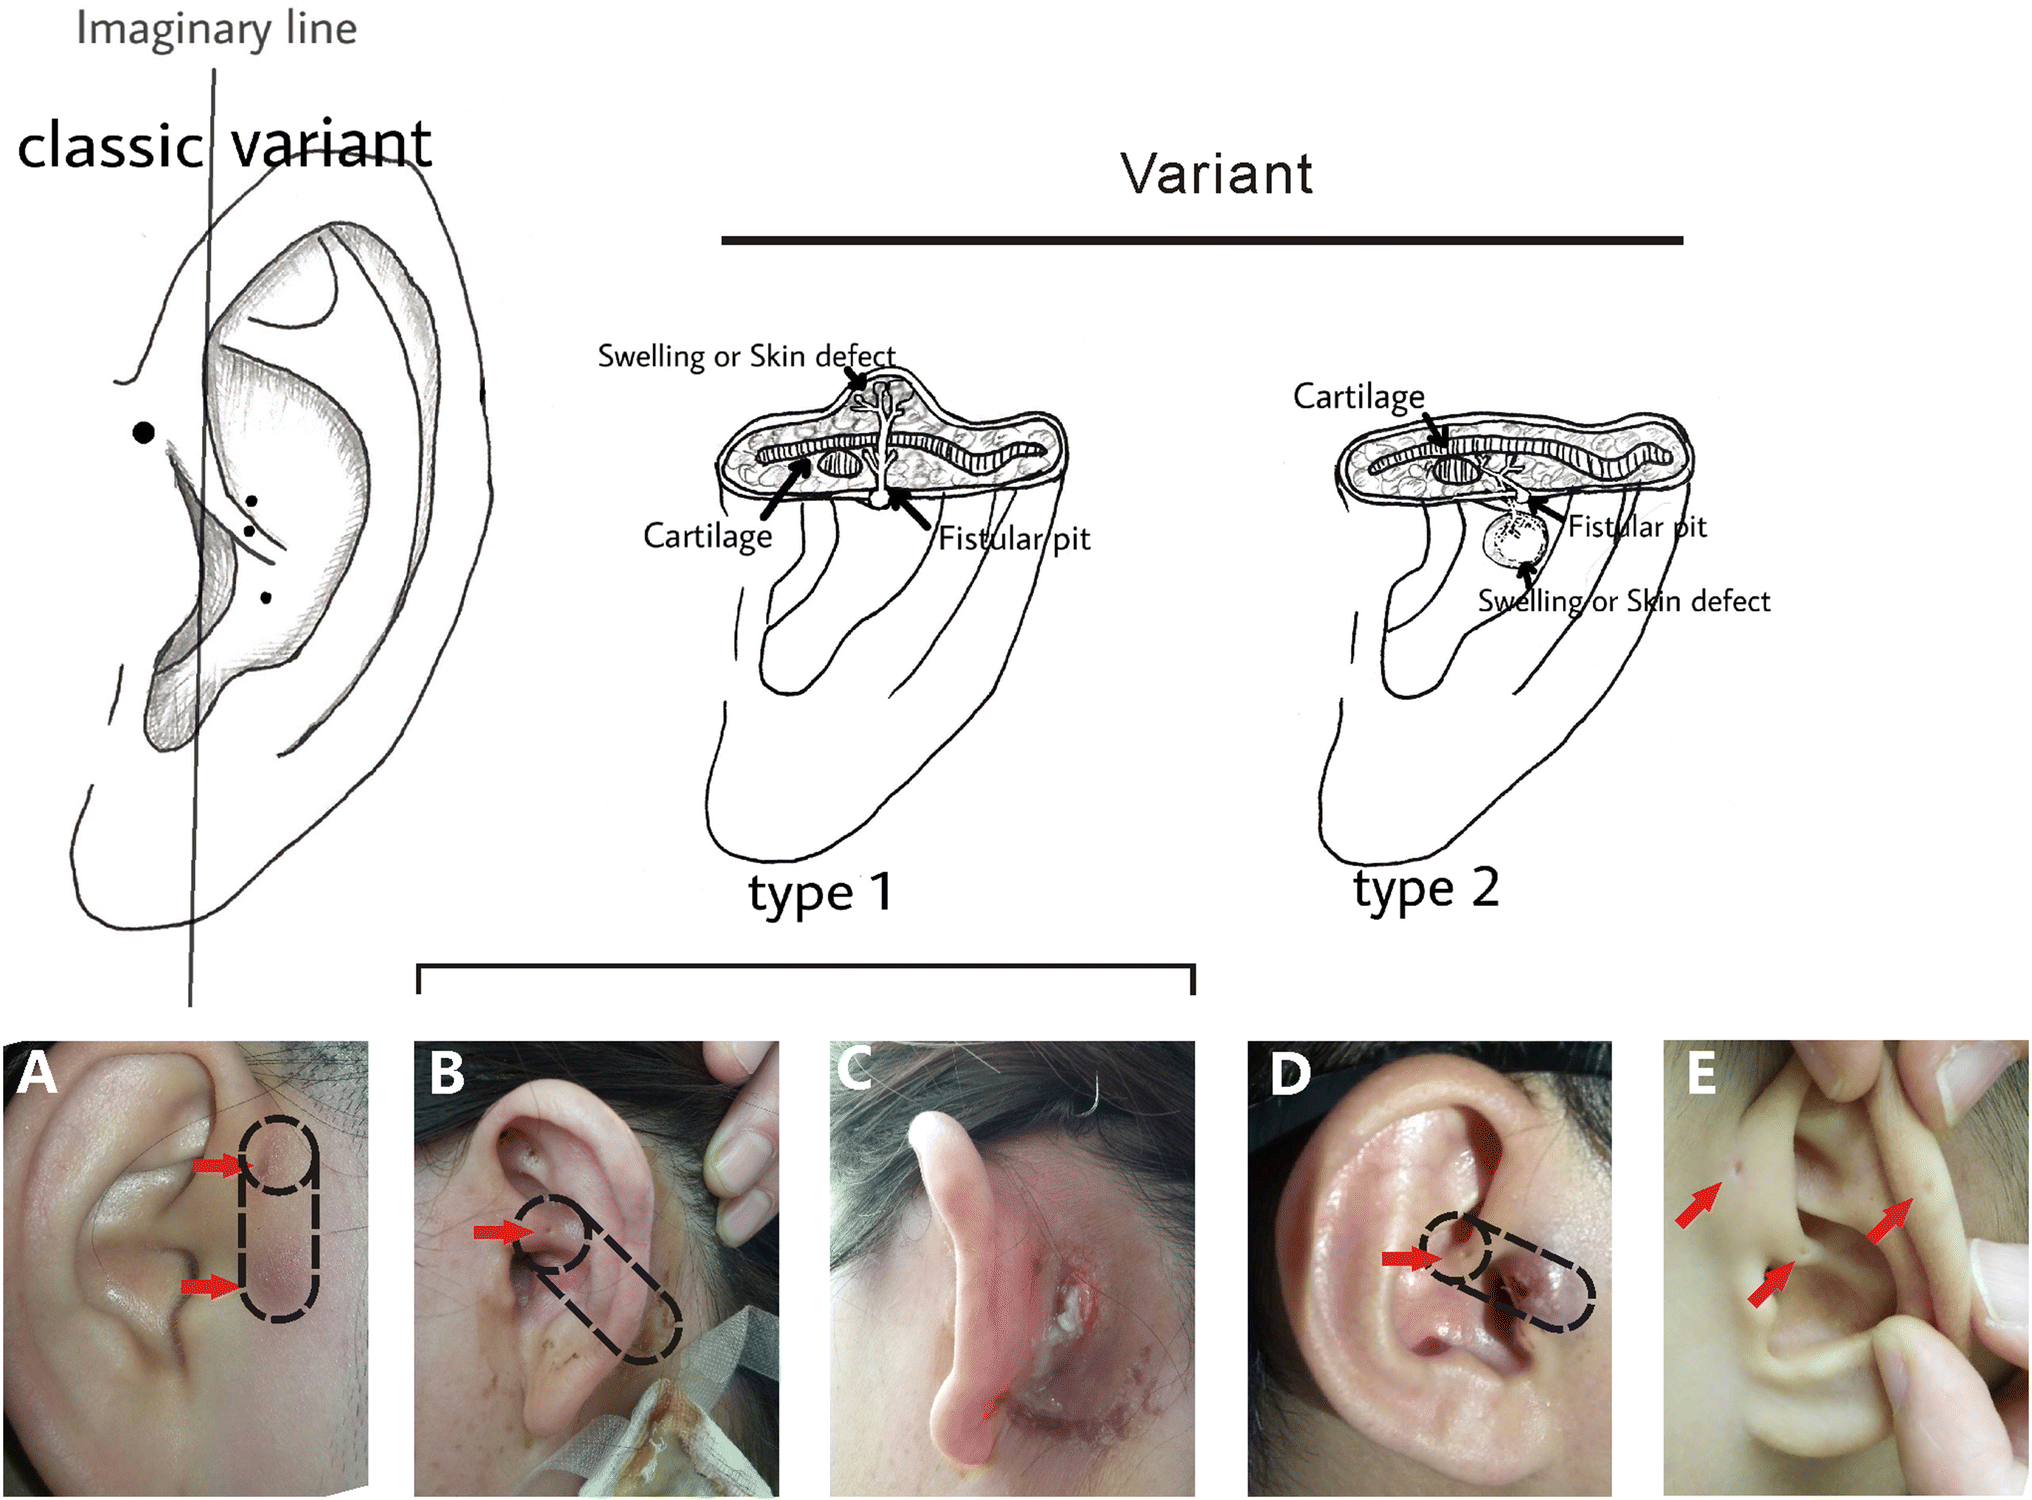 The diagnosis and treatment of a variant type of auricular sinus